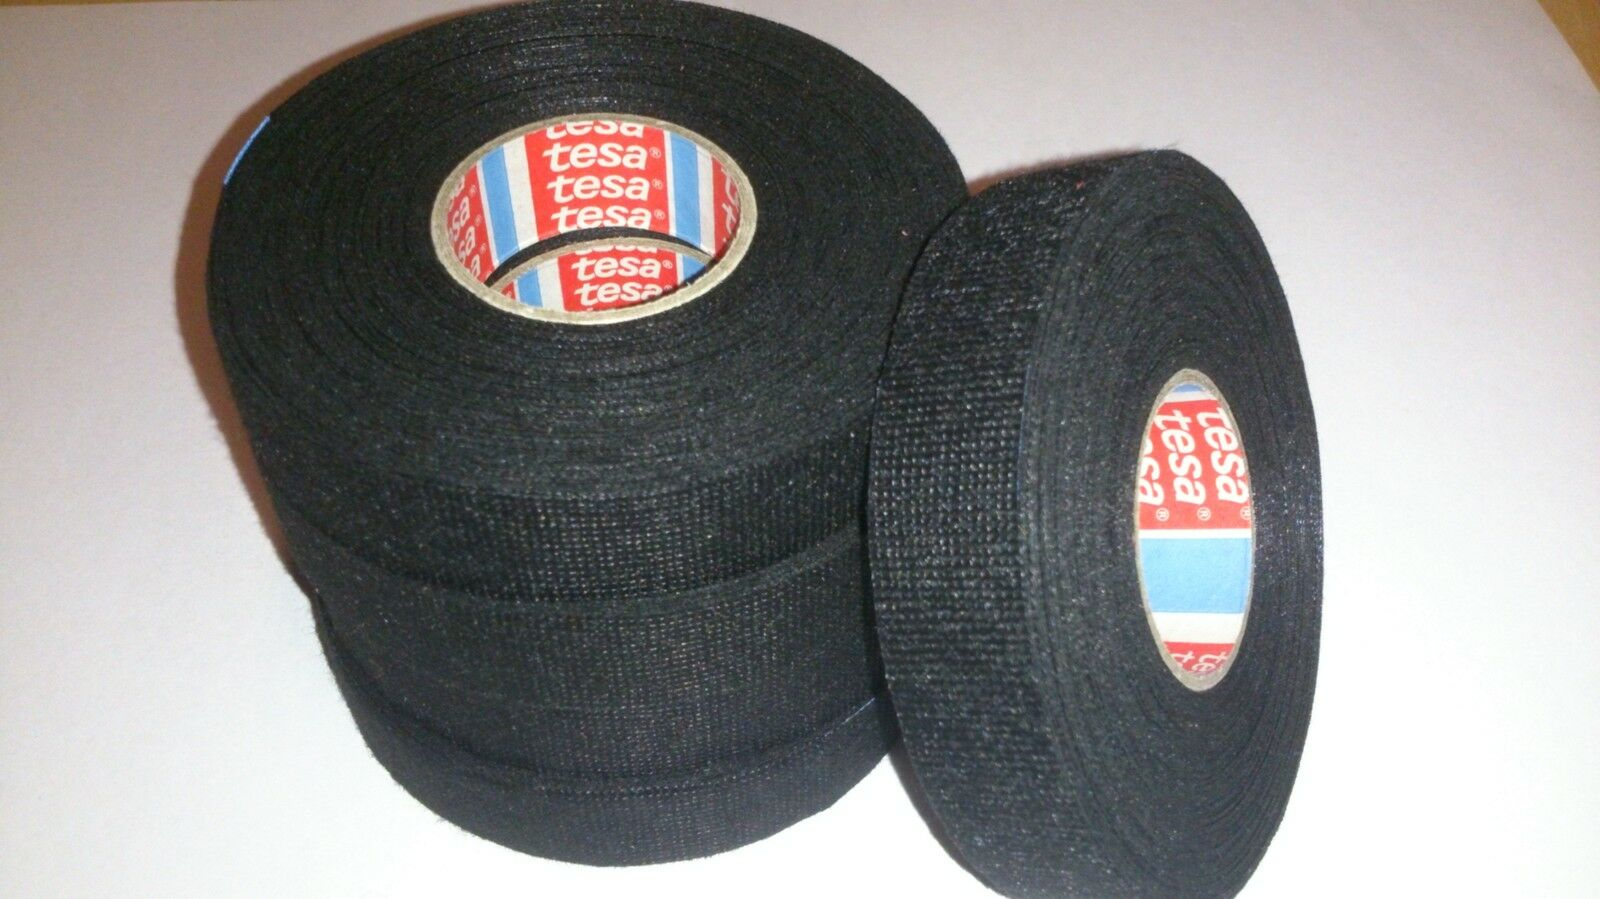 10 X Tesa Tape 25mx19mm Cable Roll Adhesive Cloth Fabric Wiring Loom Harness 1 Of 4free Shipping See More